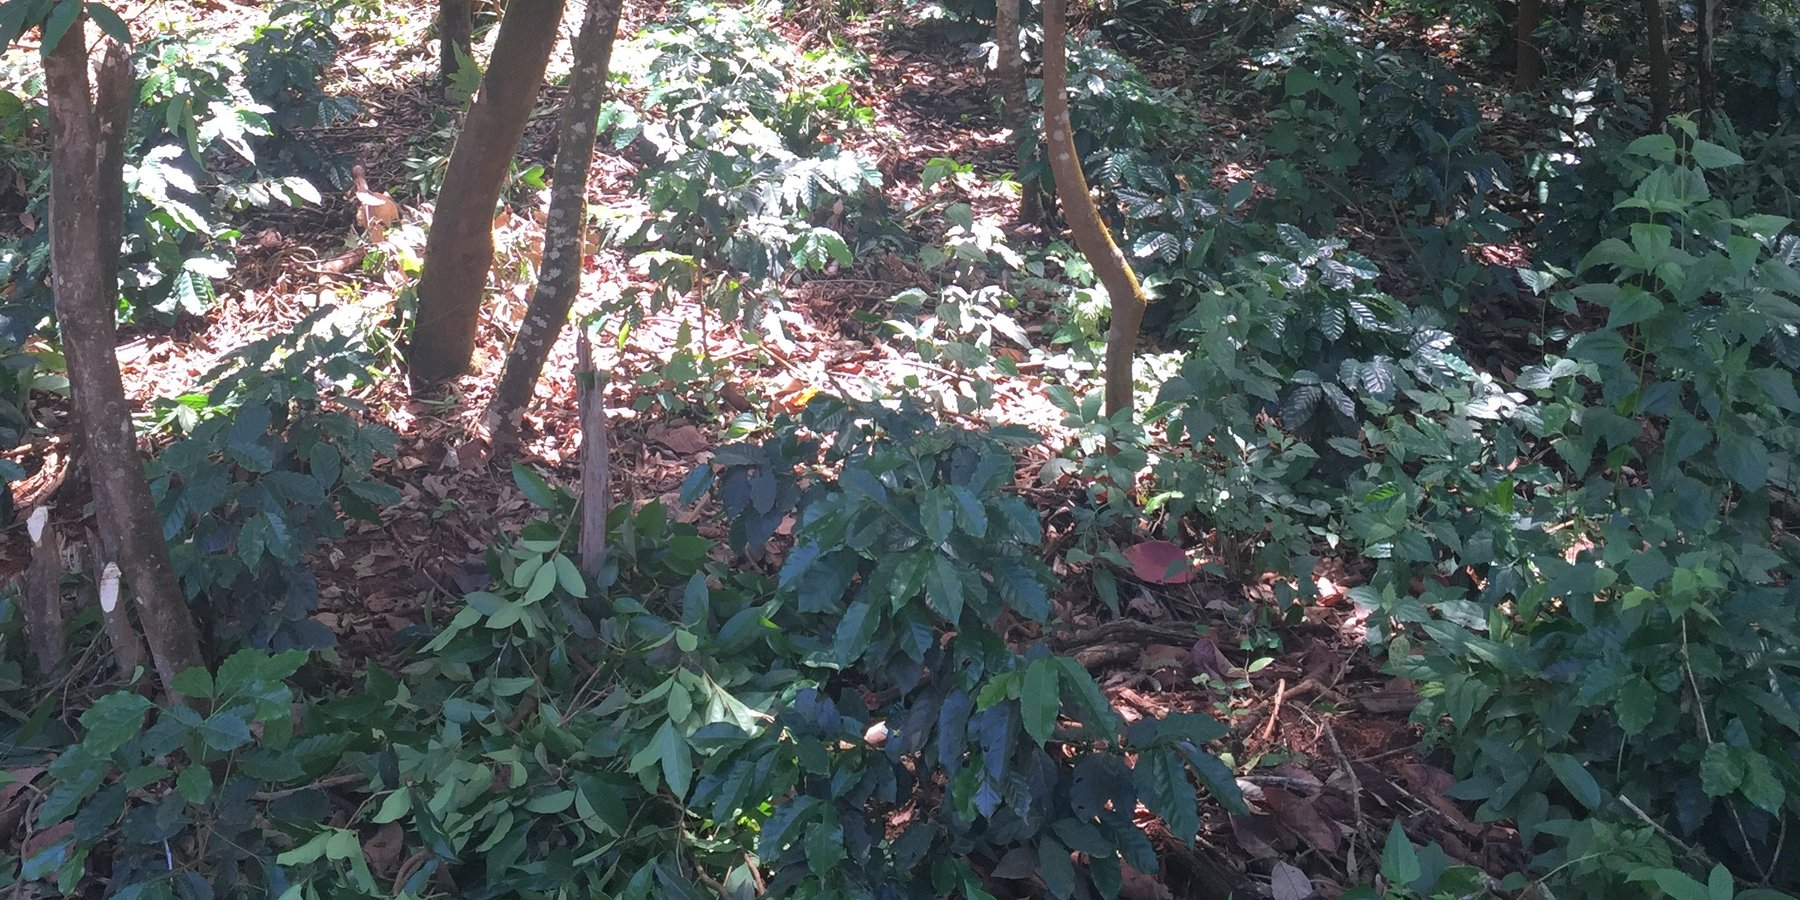 Coffee cultivation with the trees in a fallow area